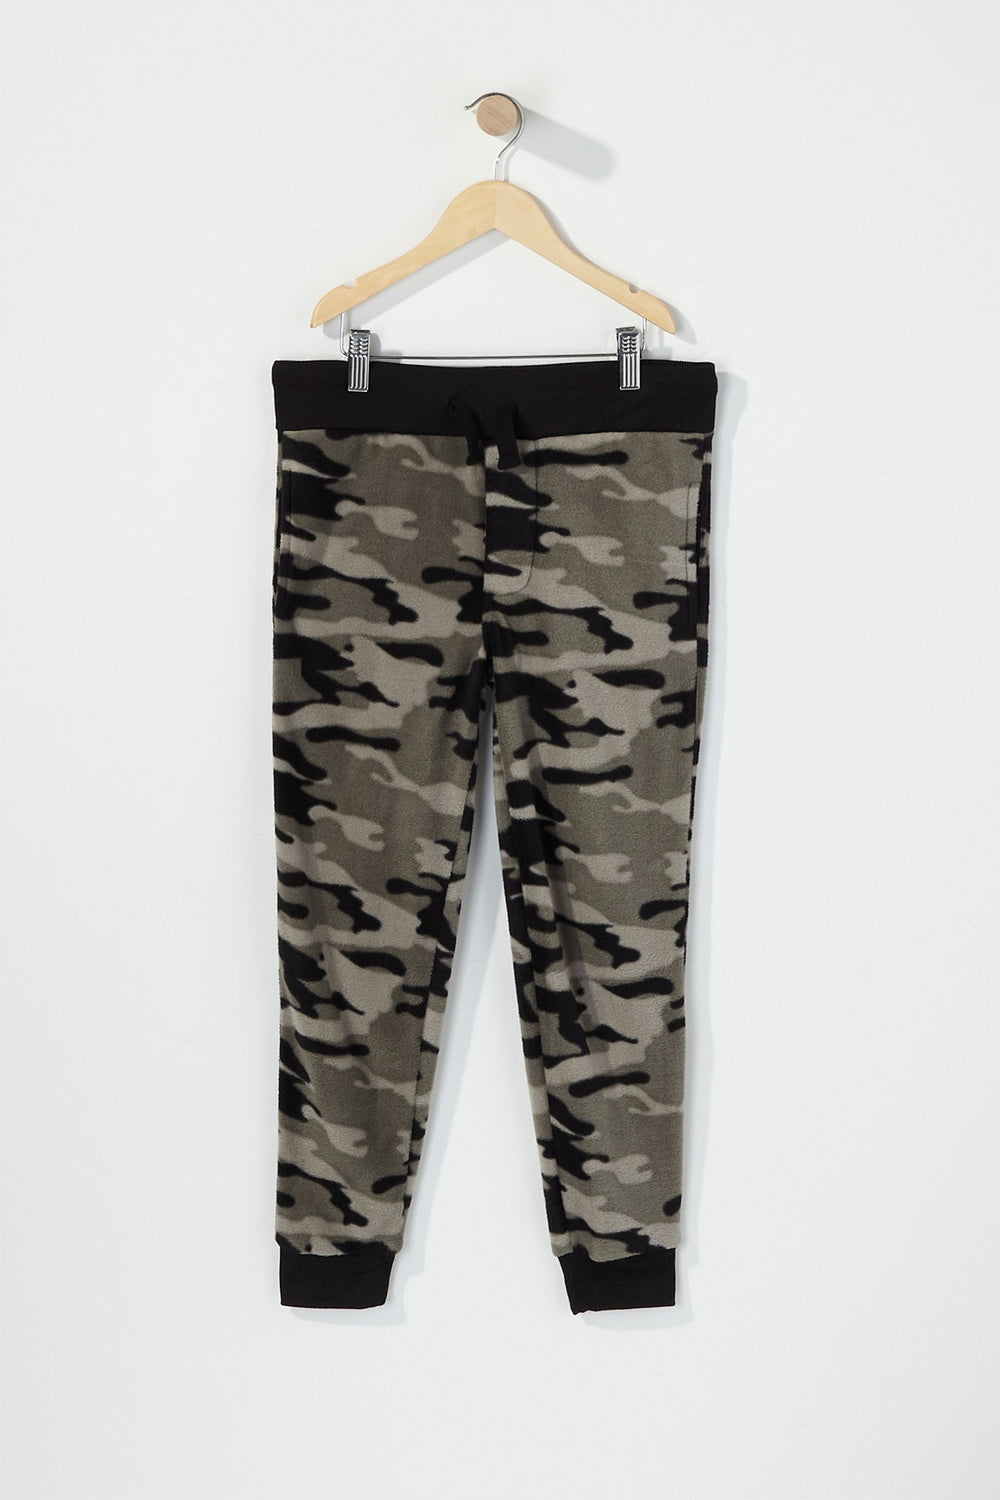 West49 Boys Fleece Camo Print Lounge Pants Black with White